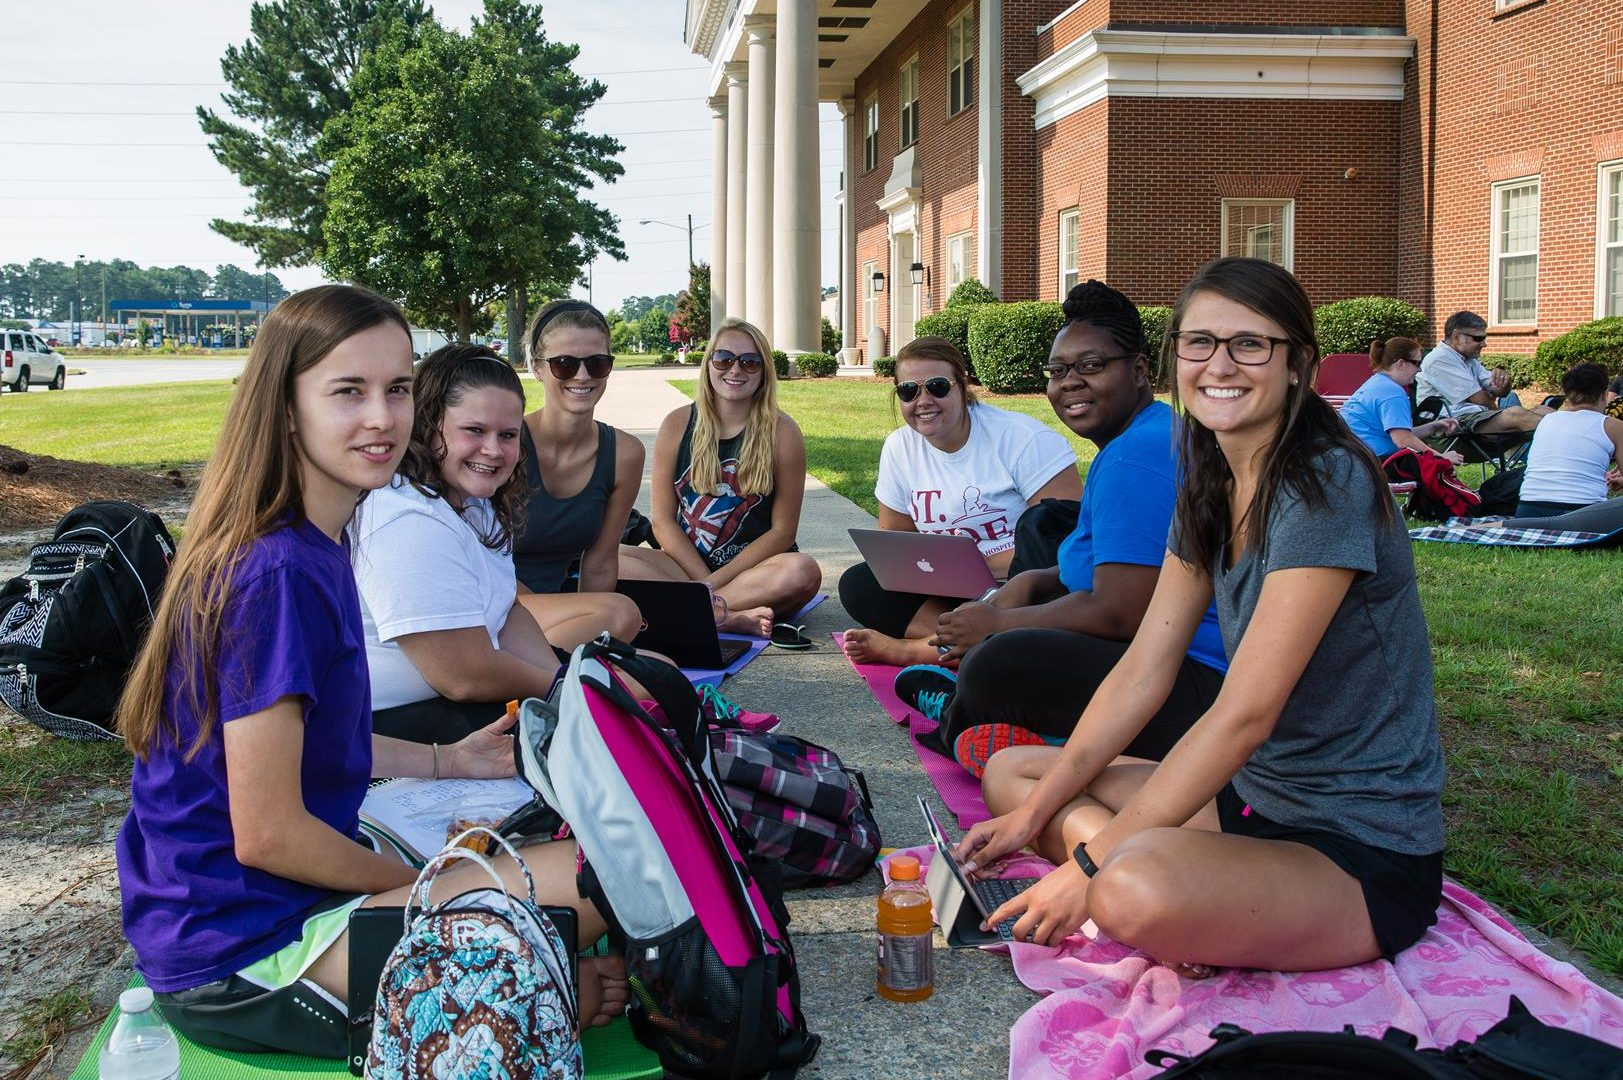 A group of female students sitting on ground outside on campus studying